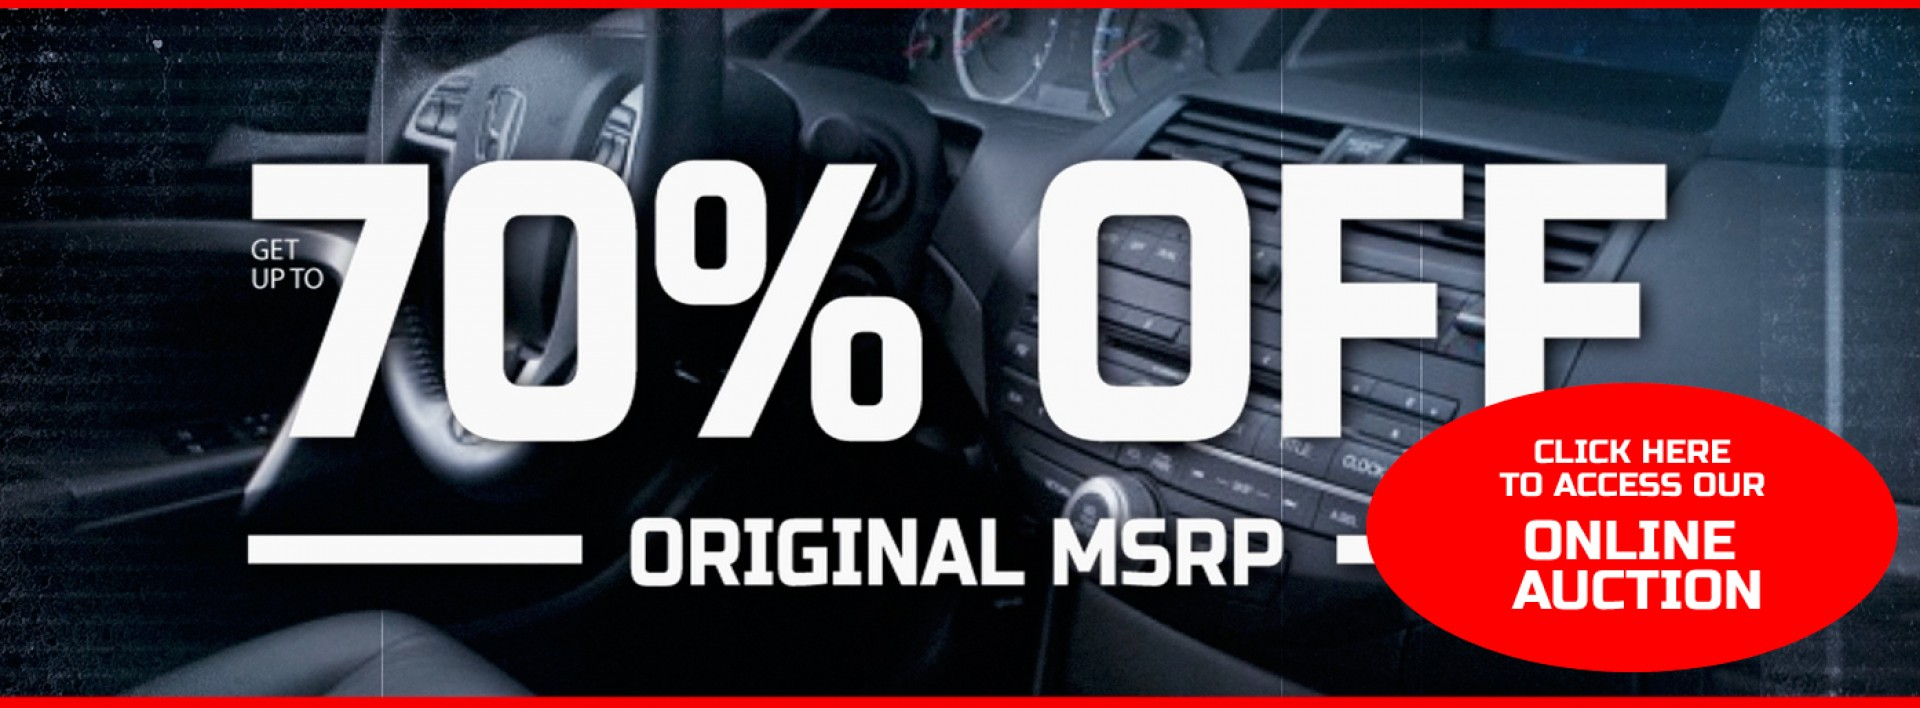 Get up to 70% OFF from original MSRP